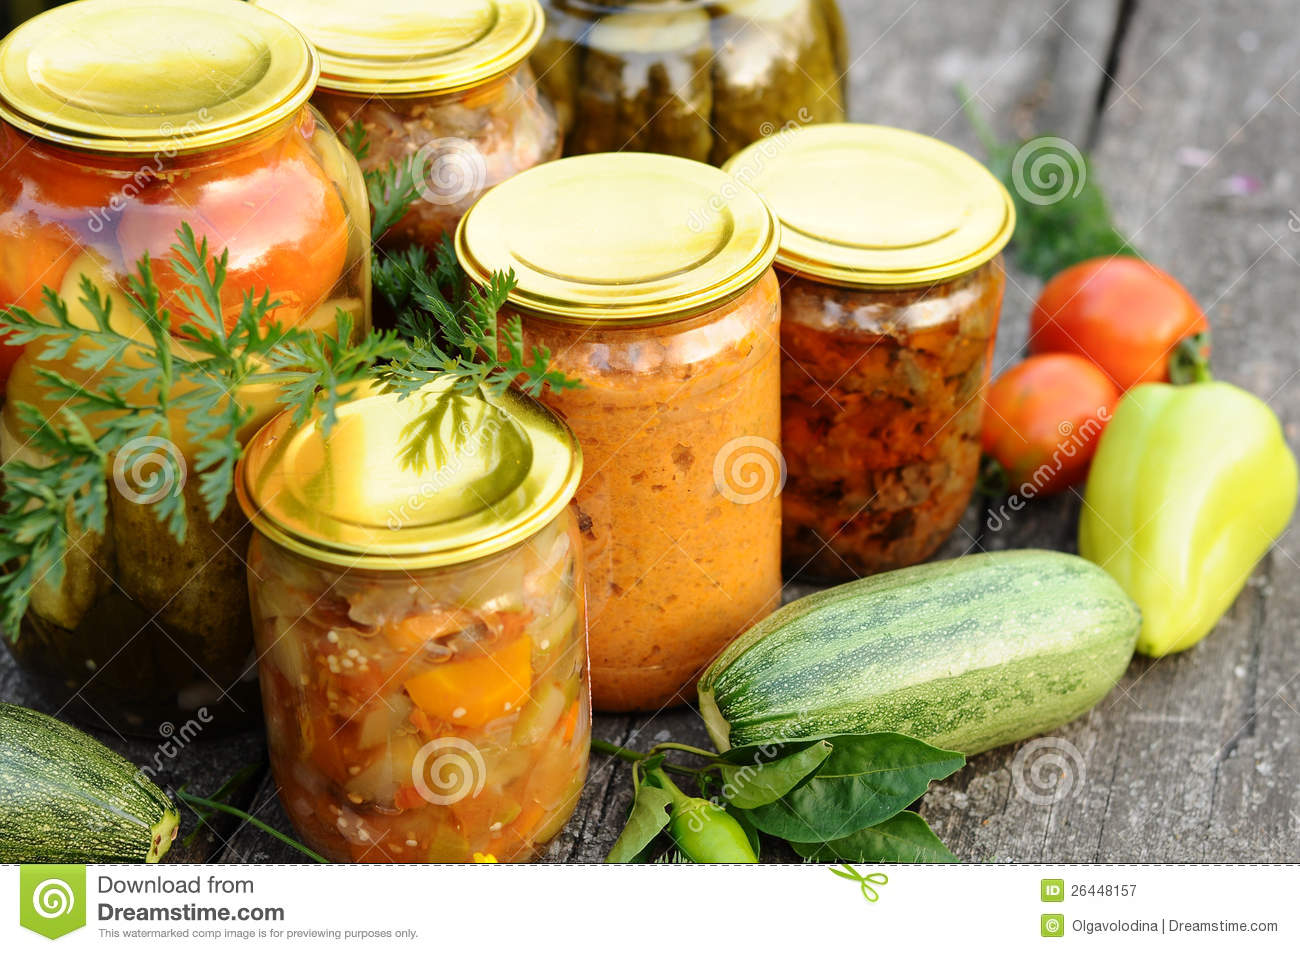 Homemade Canning Canned Vegetables And Flowers